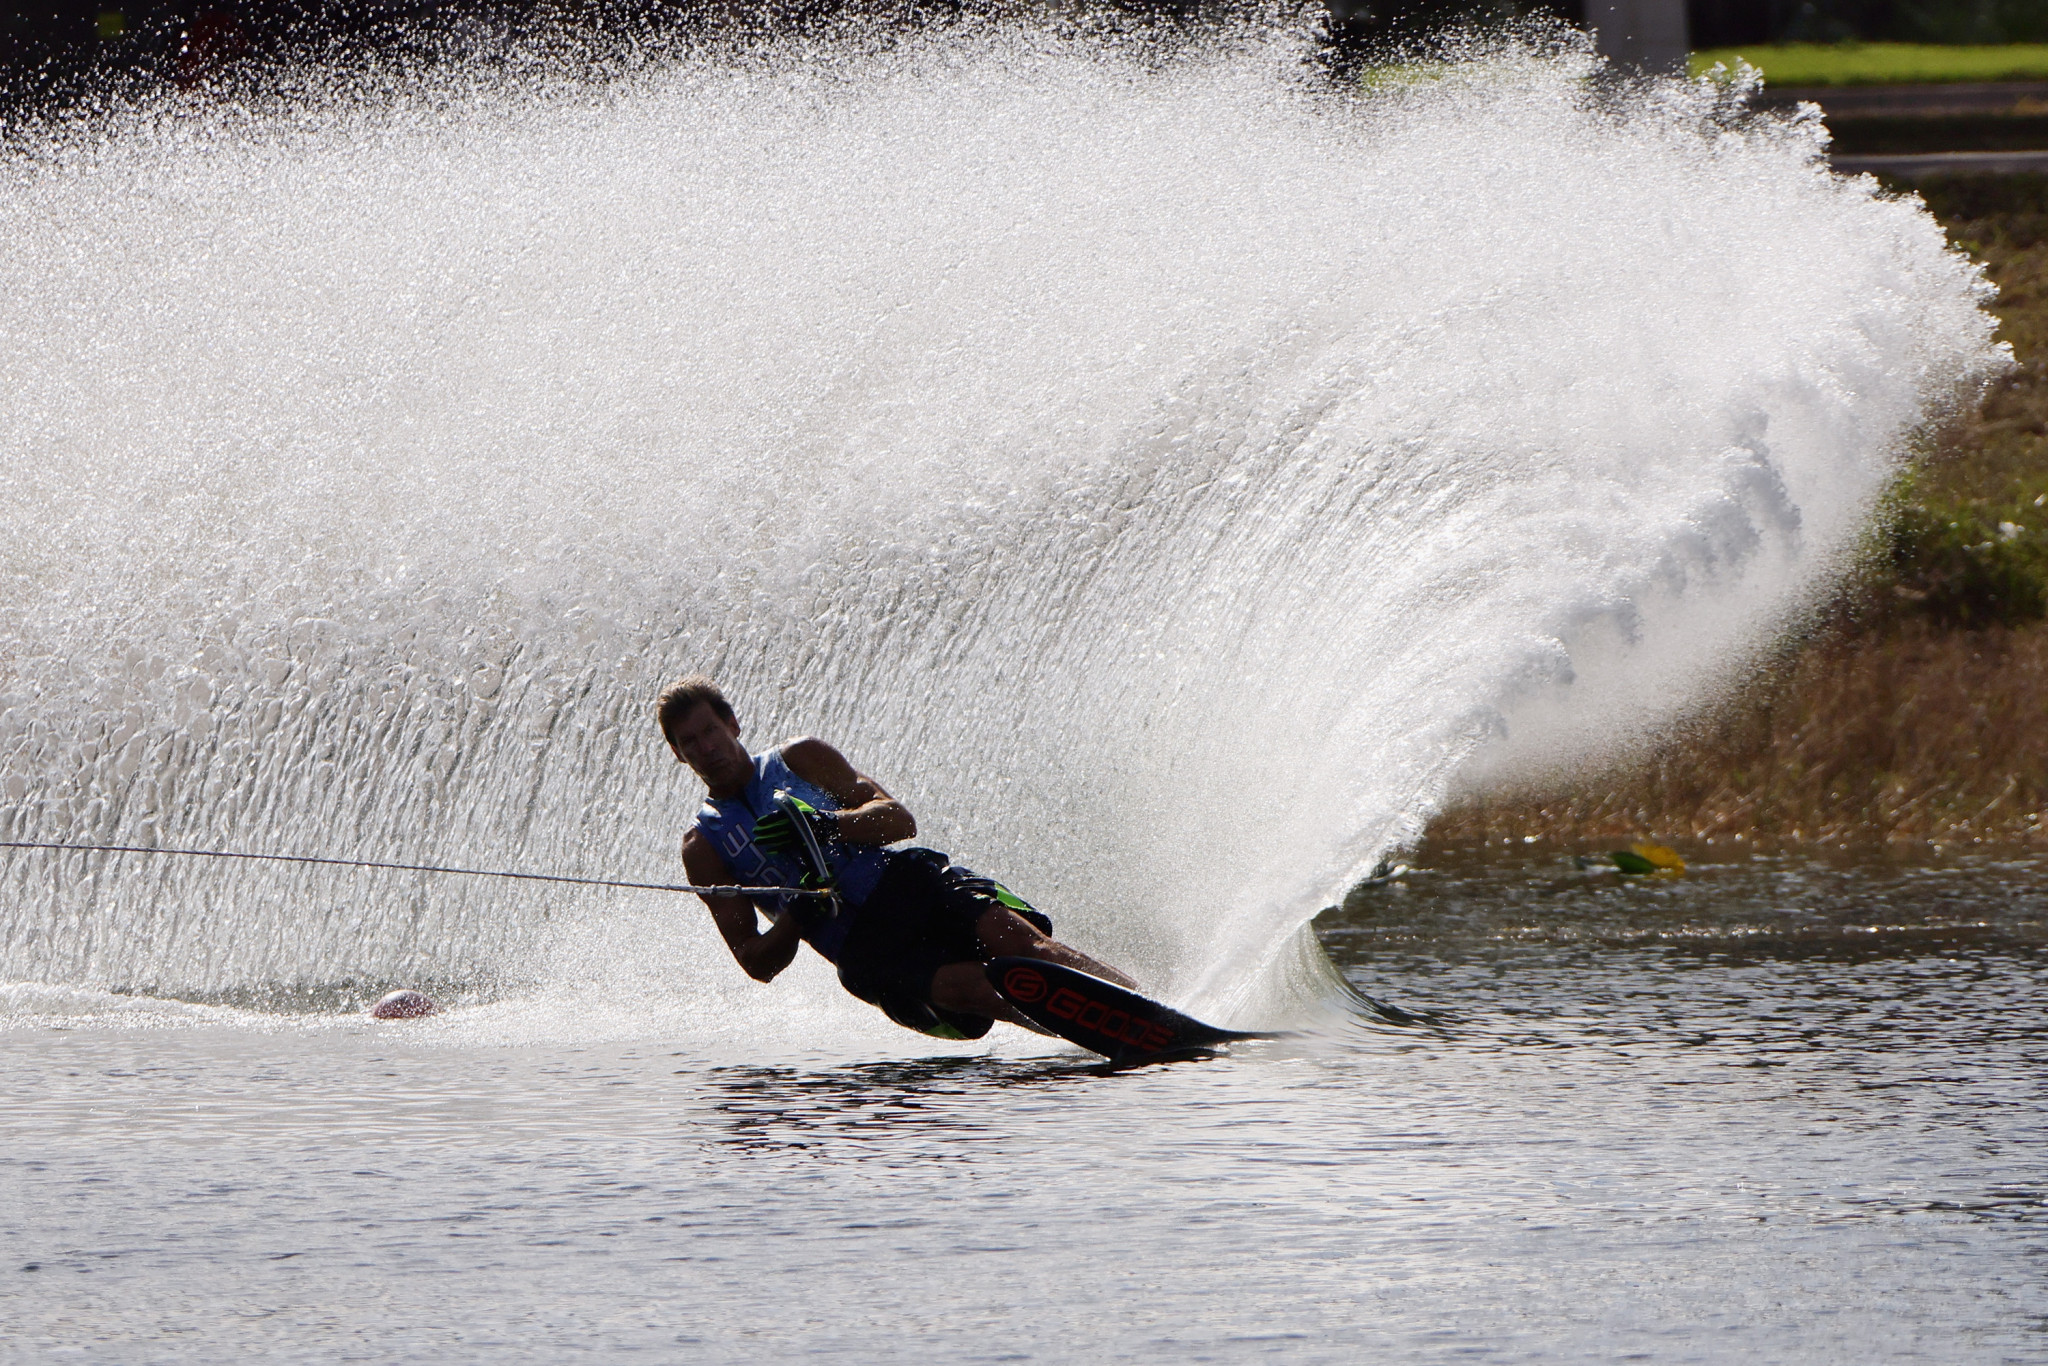 Smith and Bull take gold medals at World Waterski Championships